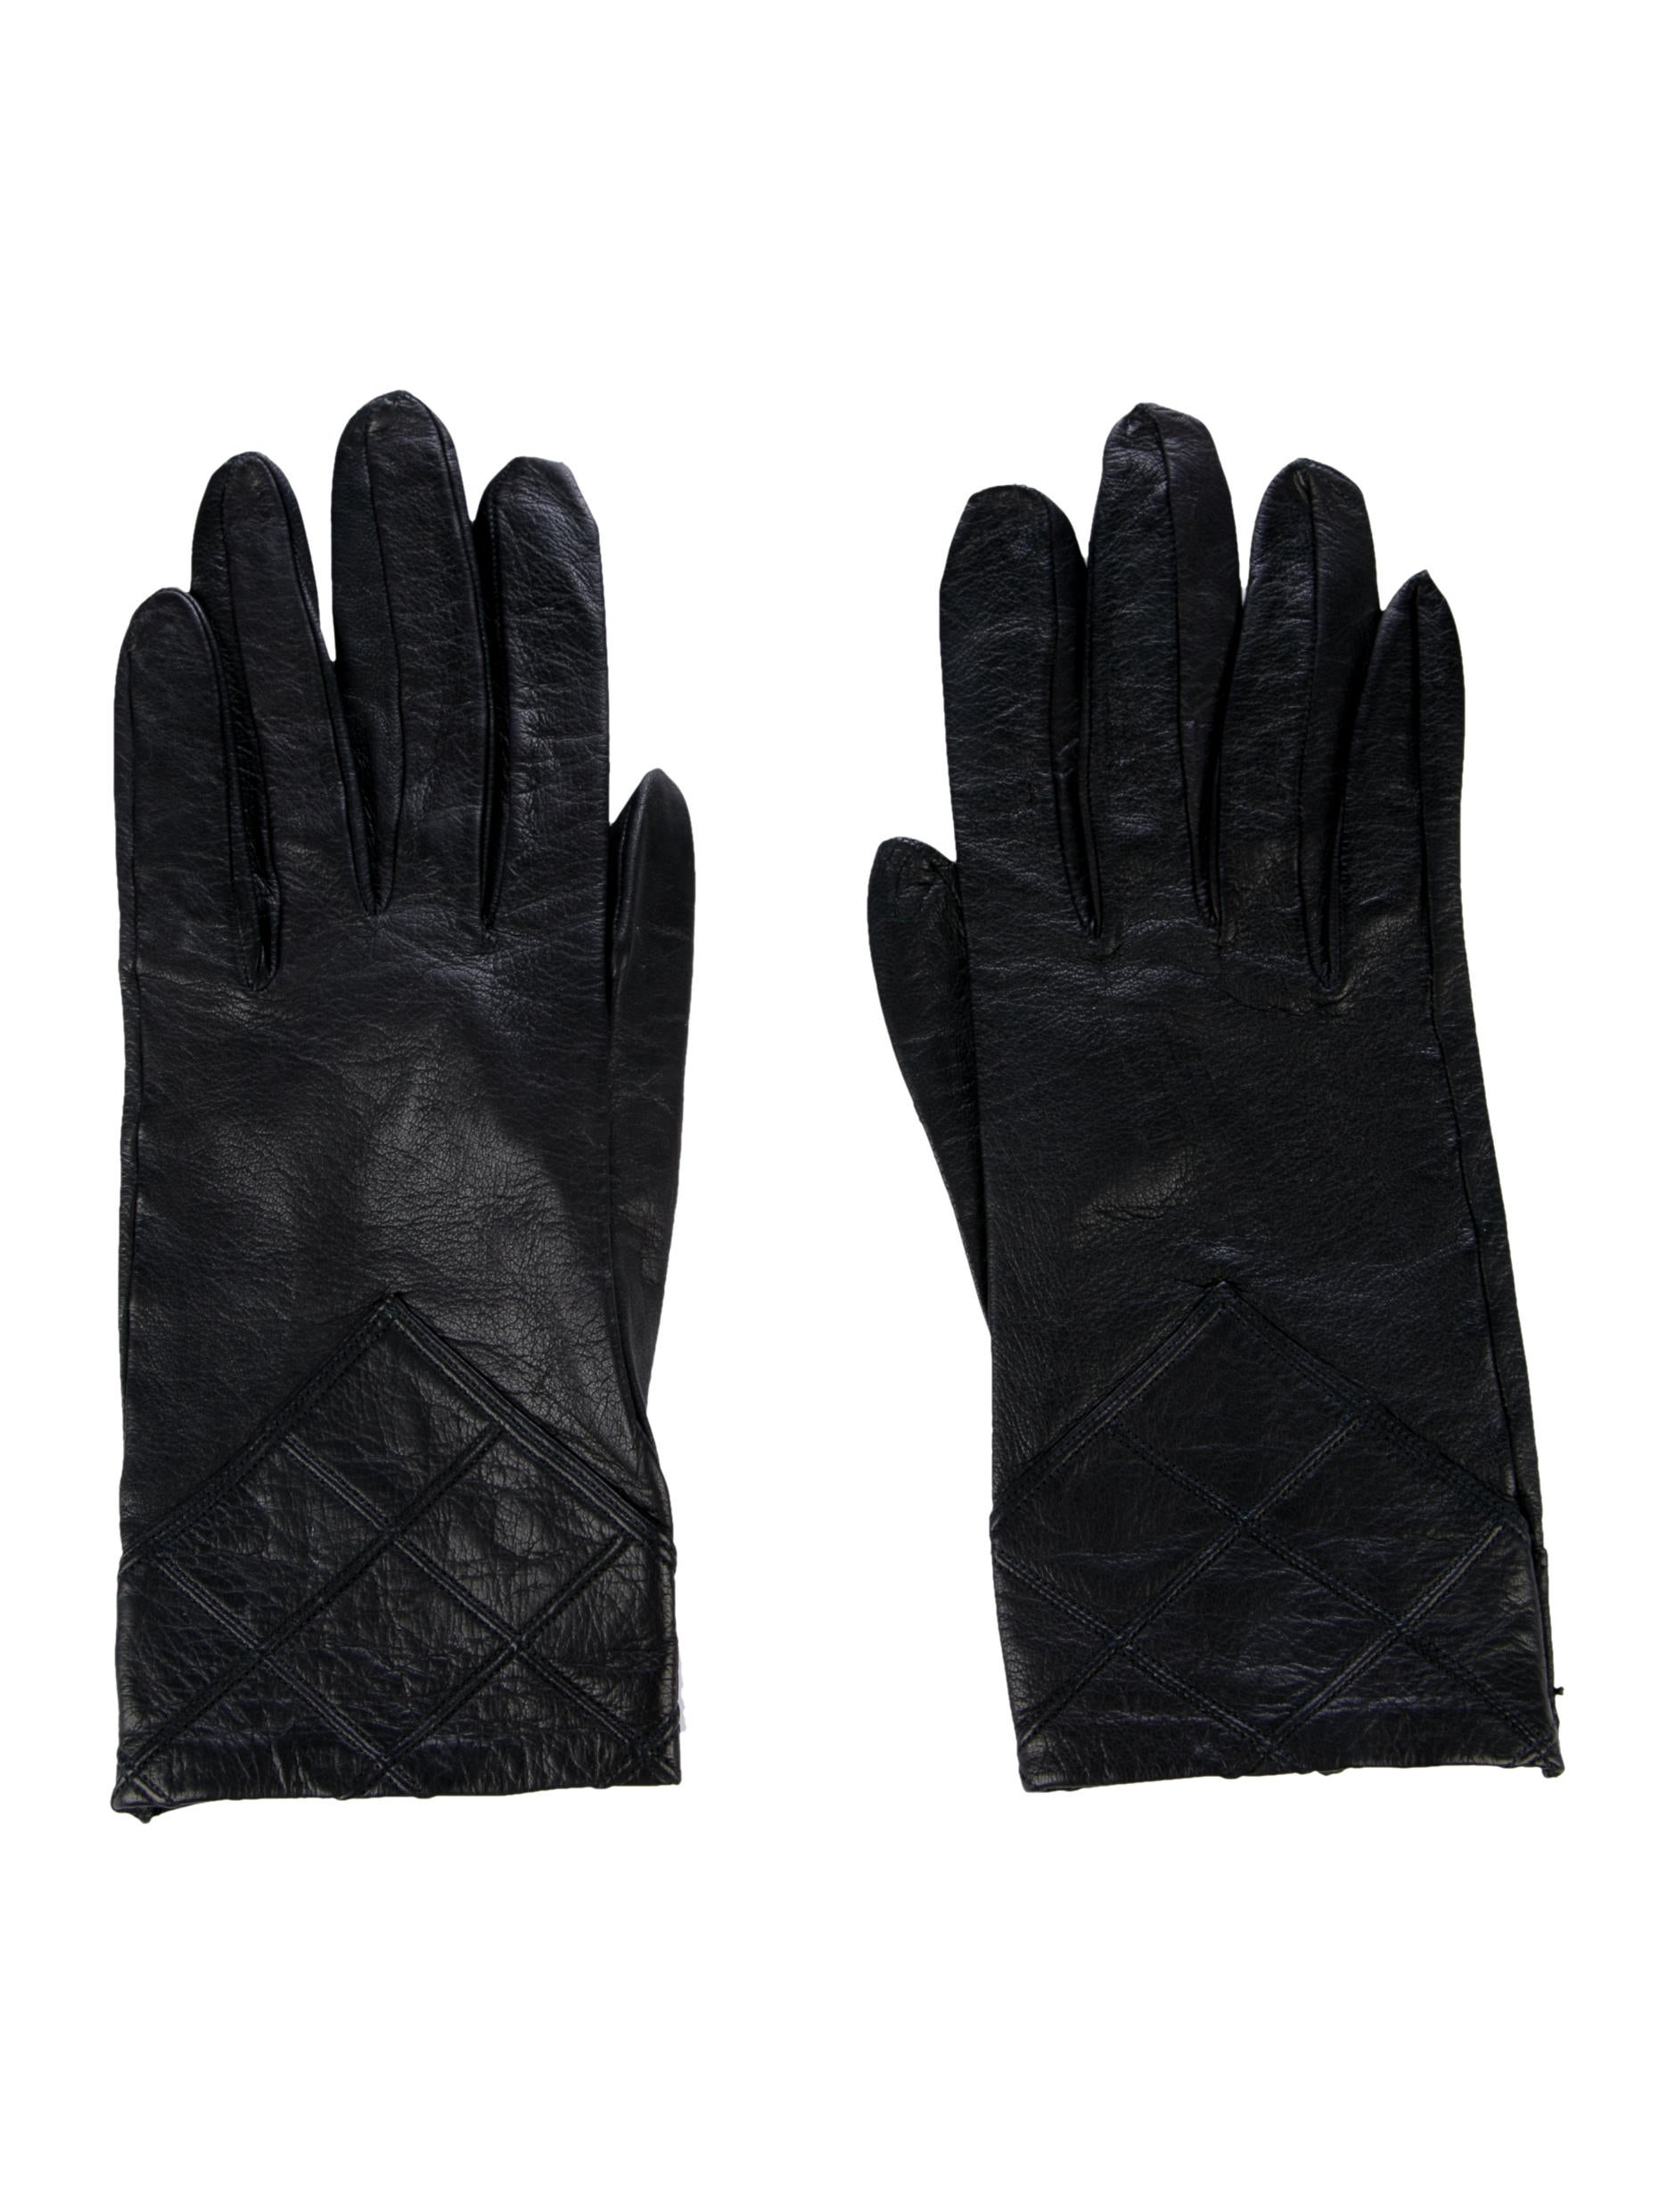 Chanel Lambskin Leather Gloves - Accessories - CHA208941 ...